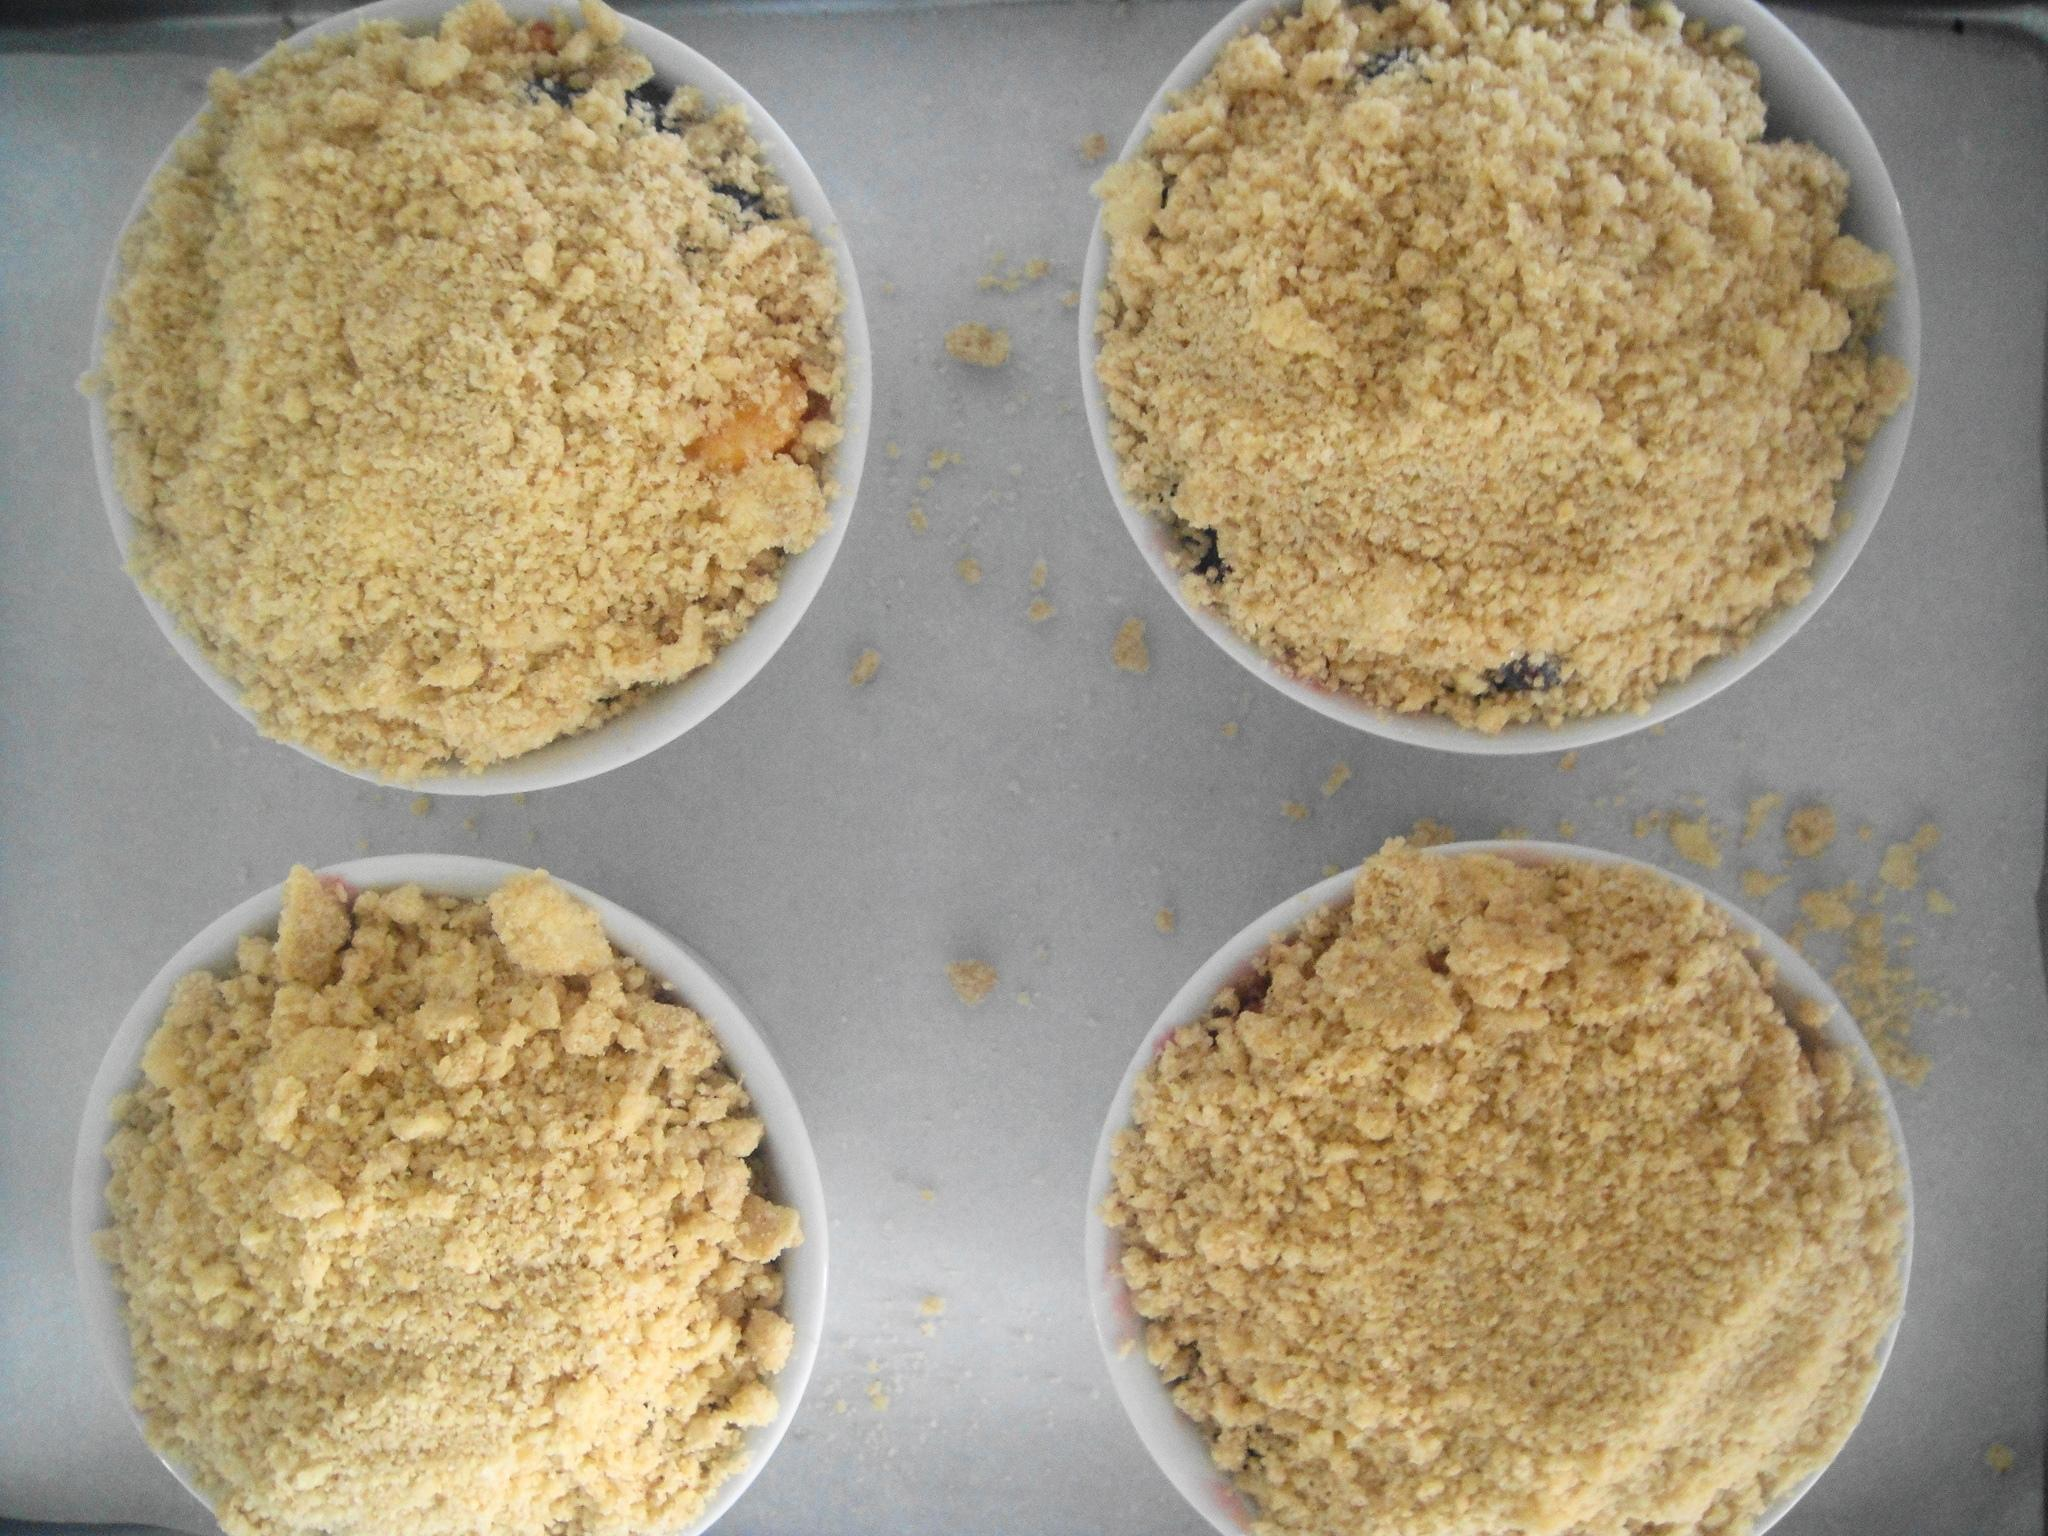 Crumble topping ready to bake